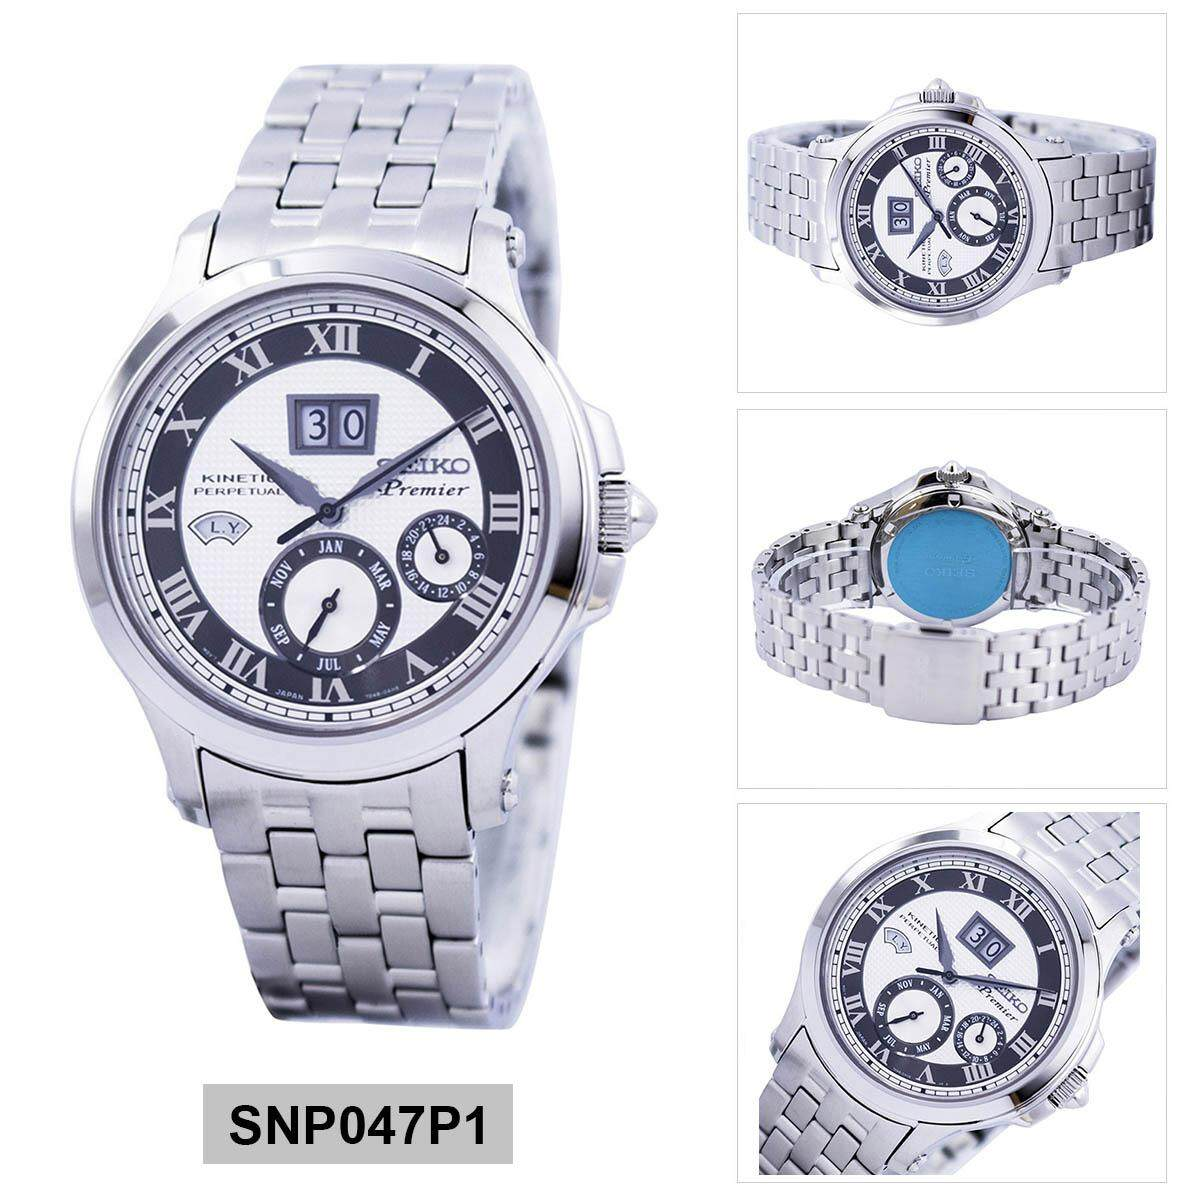 Sell Seiko Kinetic Ska683p1 Cheapest Best Quality Th Store Silver Dial Stainless Steel Bracelet Thb 12800 Premier Perpetual